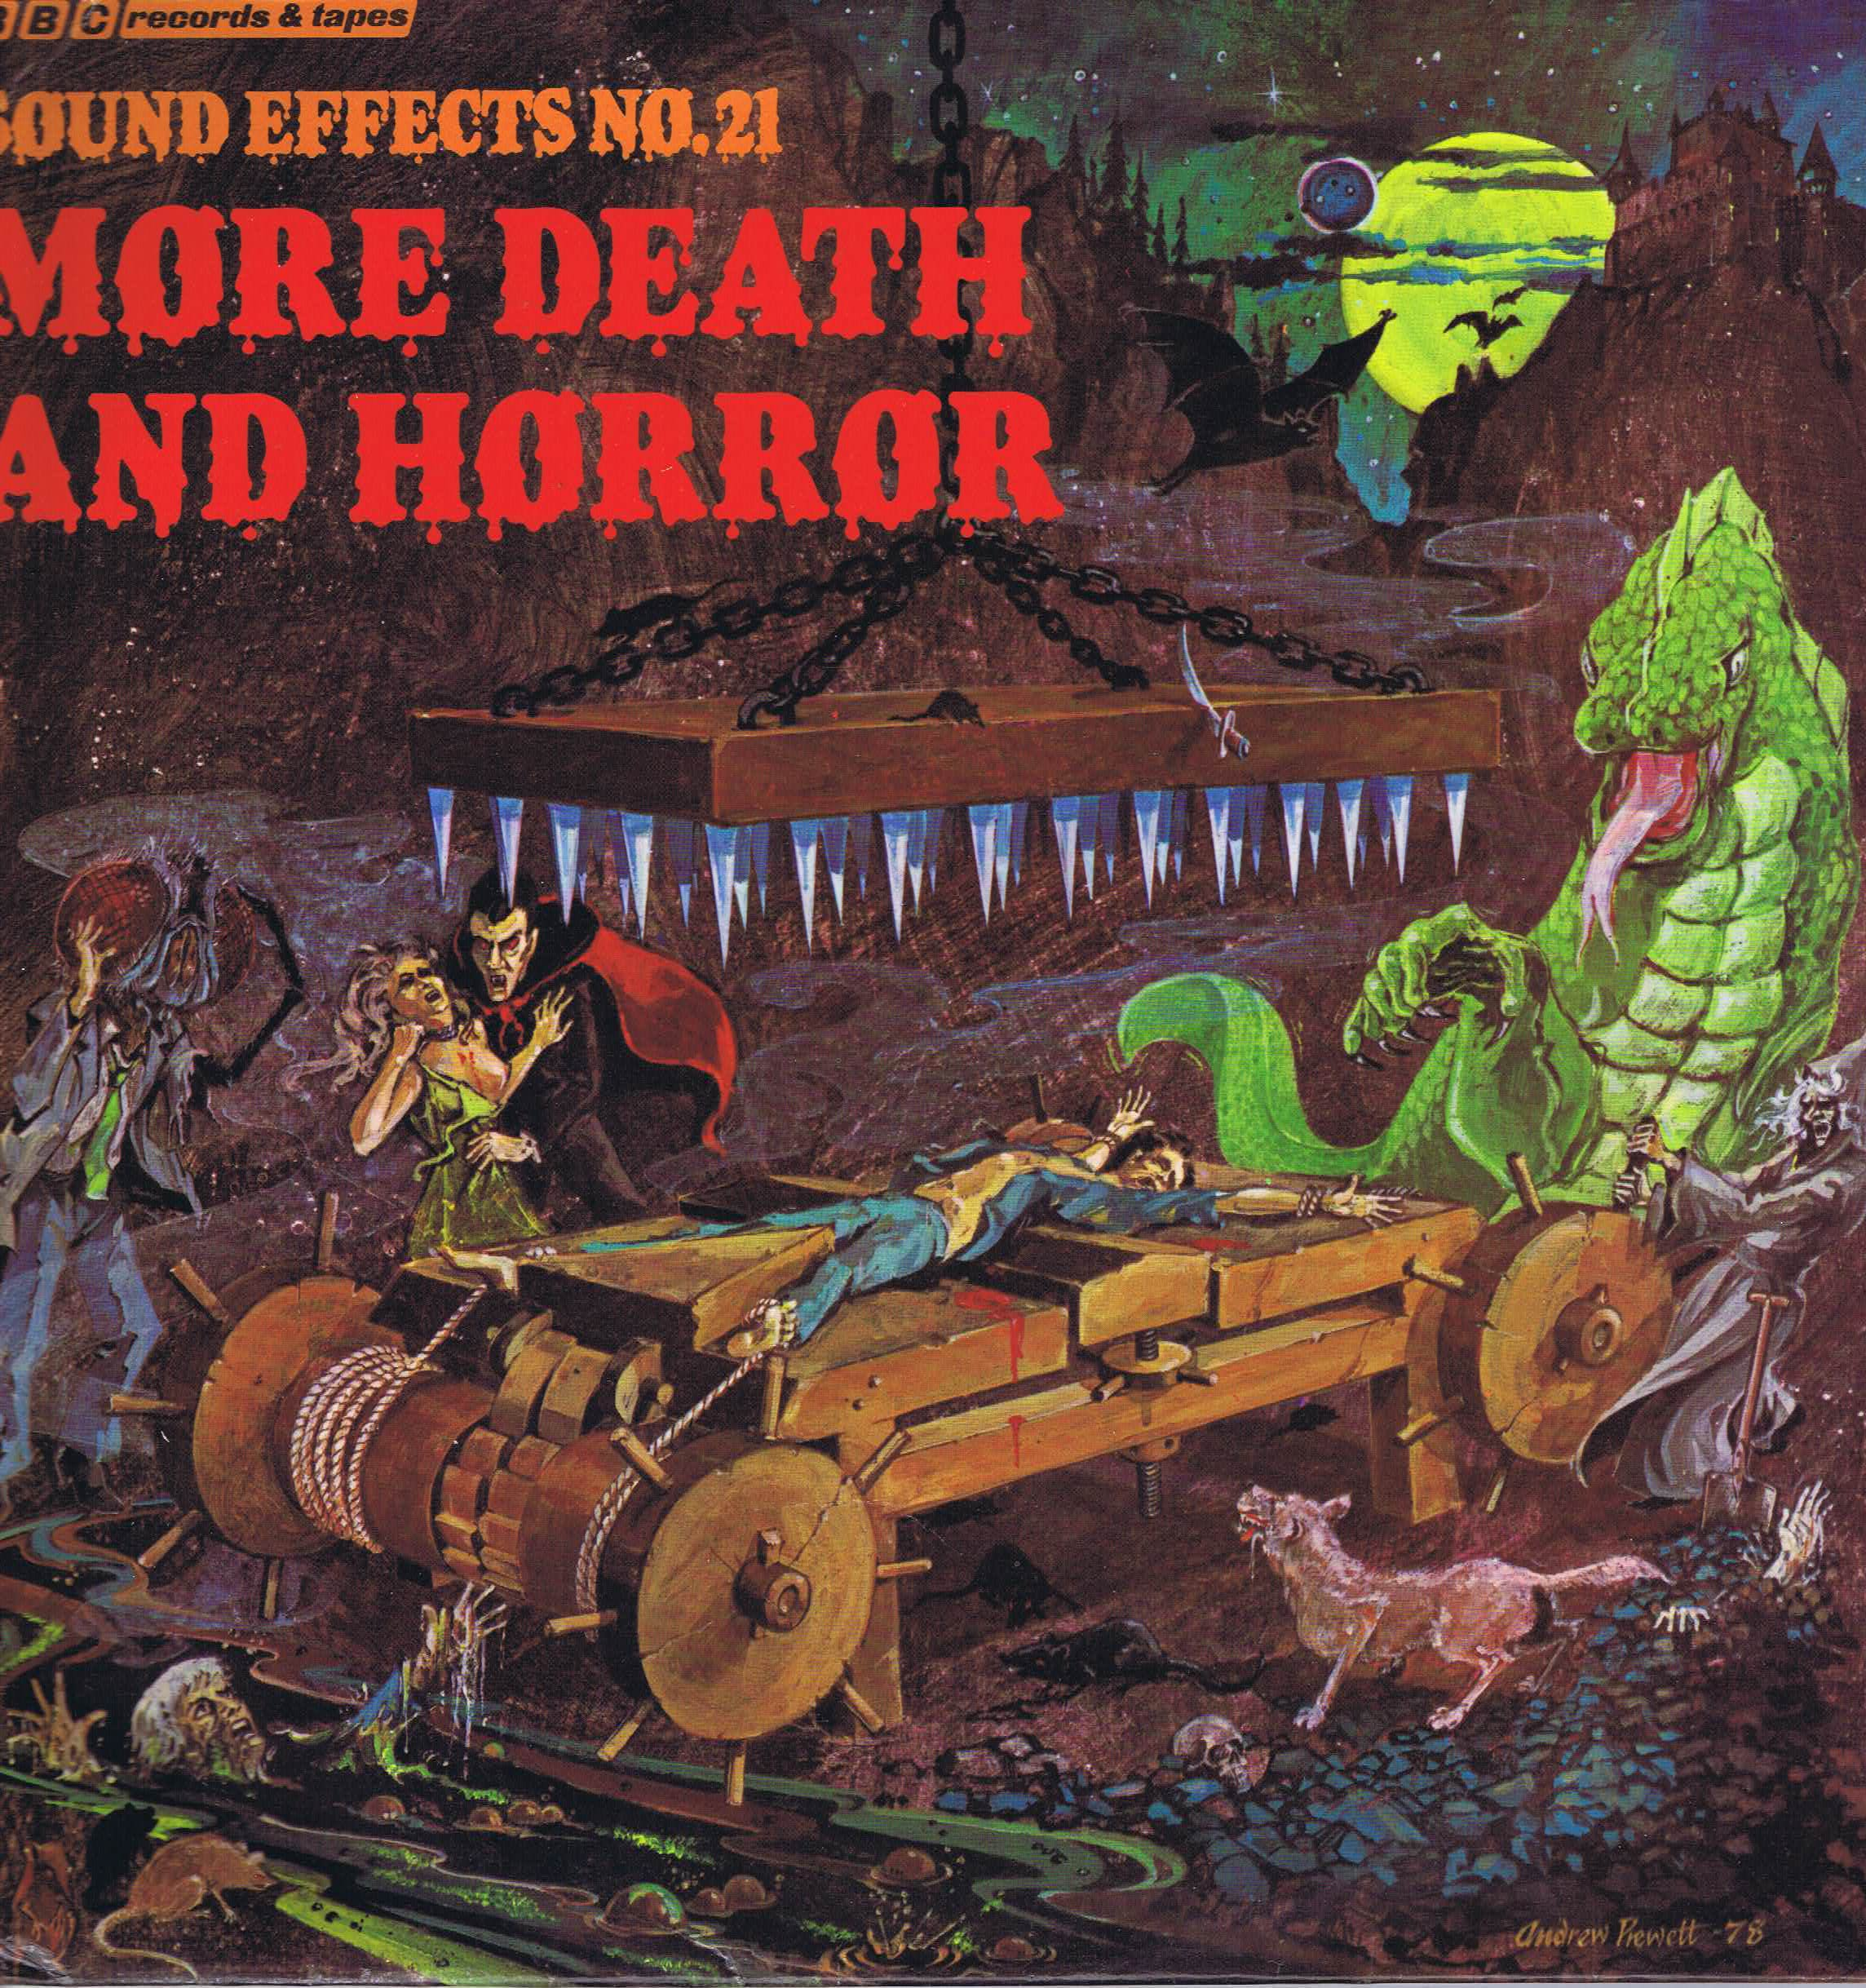 BBC Sound Effects No. 21 – More Death And Horror– Red Vinyl